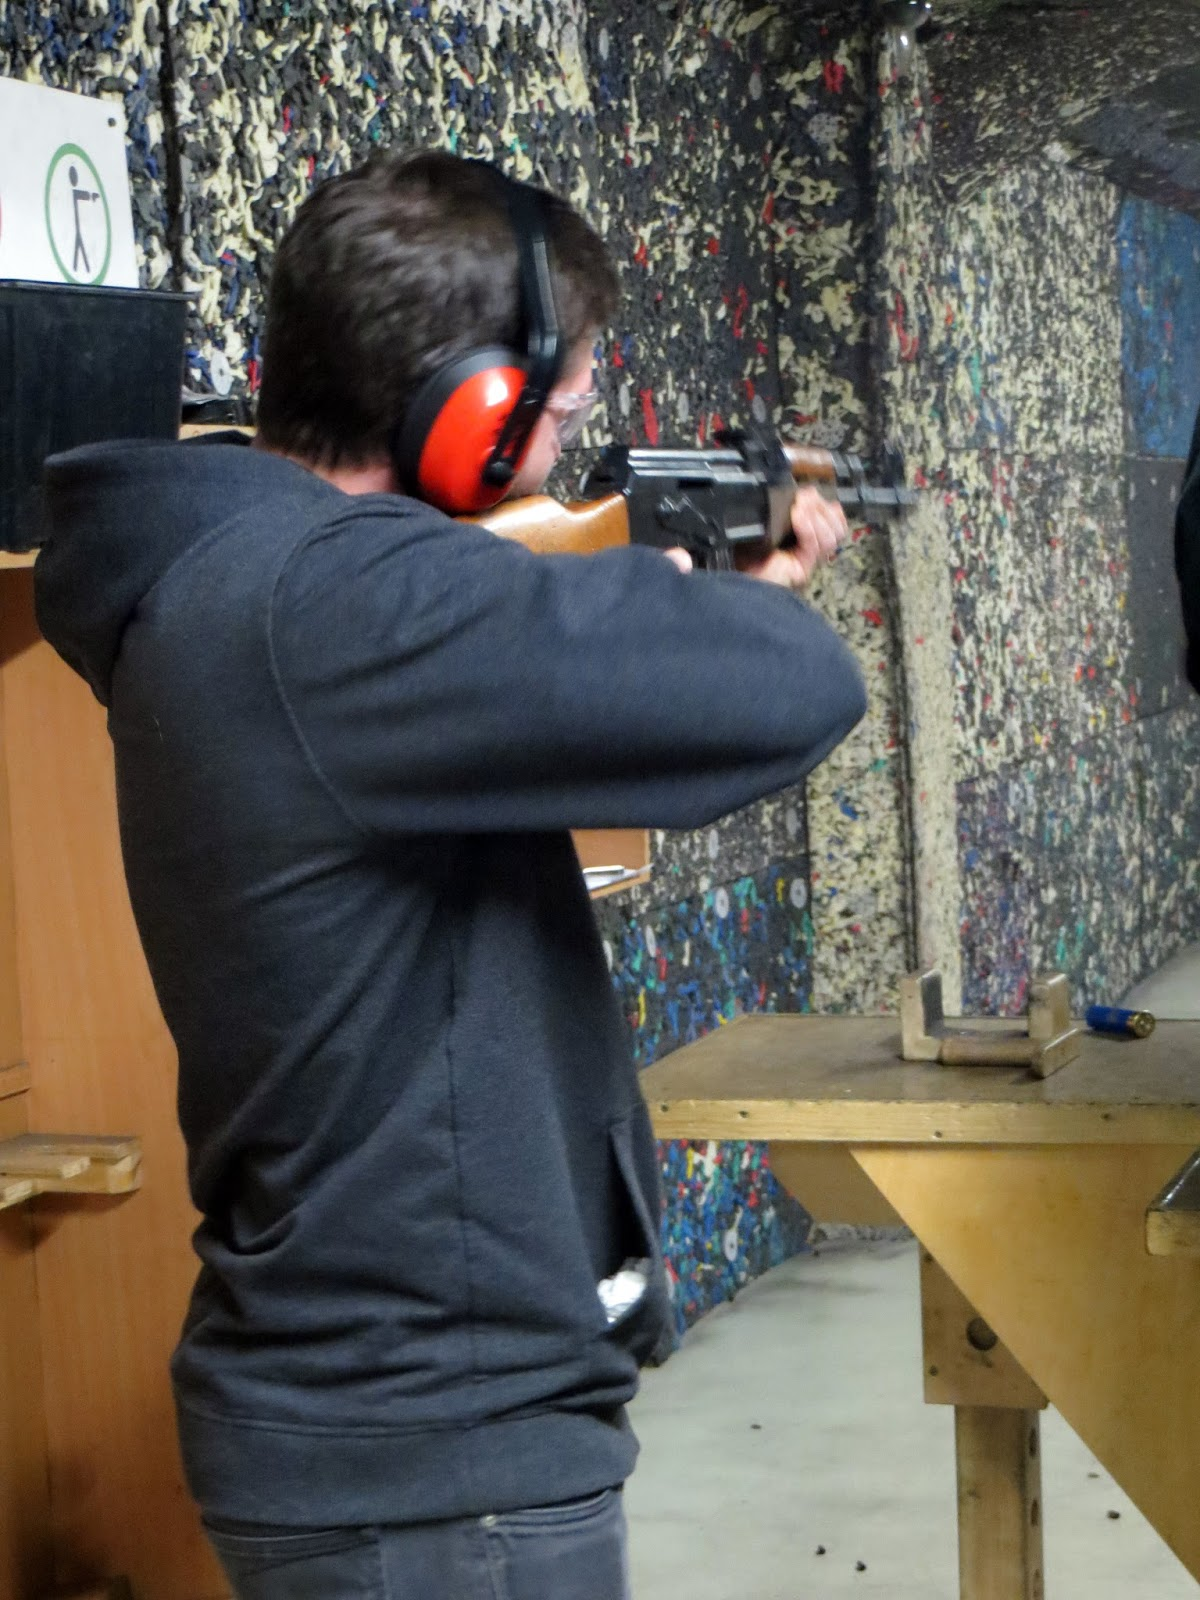 AK47, Shooting range, pistol, Ruger Mk III, GLOCK 17, Revolvers, Ceska Zbrojovka, Grand Taurus 86, Rifles, Kalashnikov (AK-47), Remington 870, Shotgun, Weapons, Dragunov, (SVD), Sniper Rifle, celeritas shooting club, eastern europe, hungary, budapest, bucket list, travel, travelling, traveling, experiences, gun, shooting, adventure, travel blog,